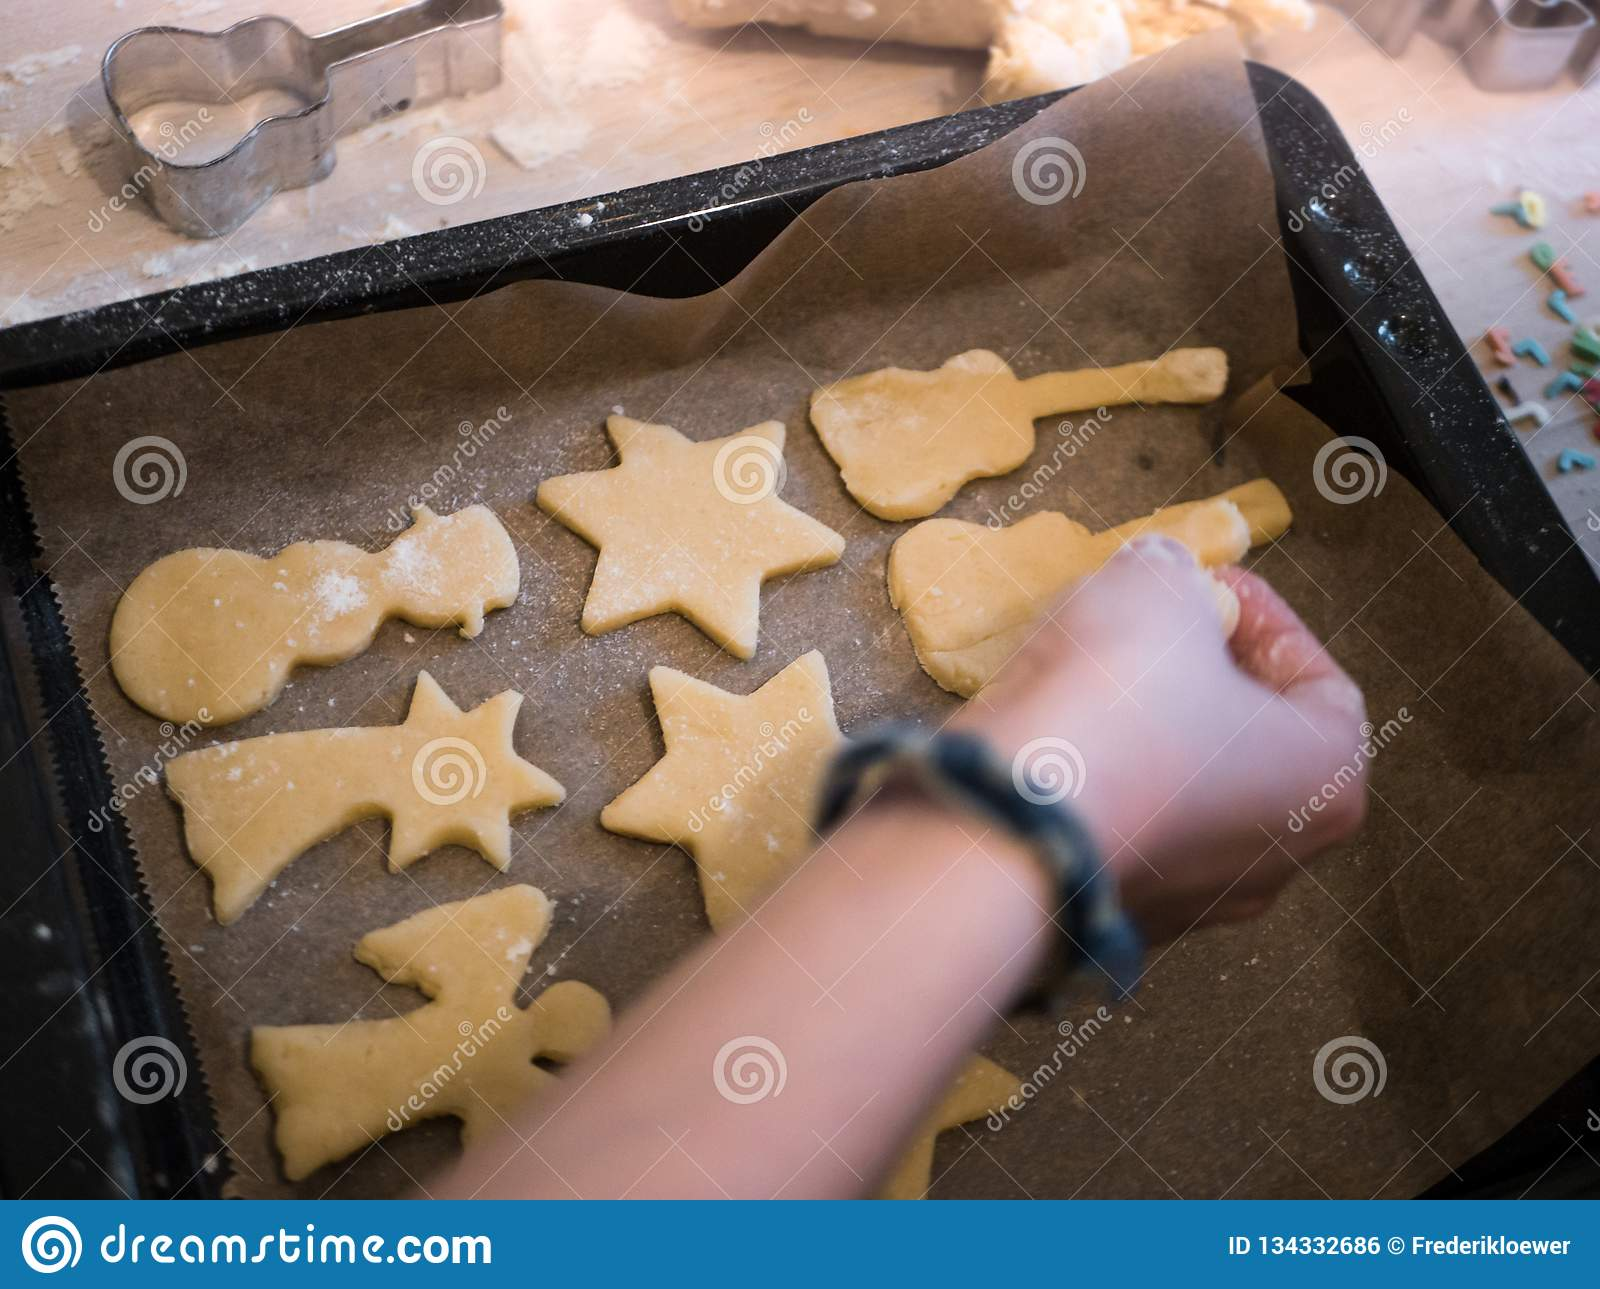 Christmas Bakery: Little girl putting different shapes of cookie dough on a baking tray